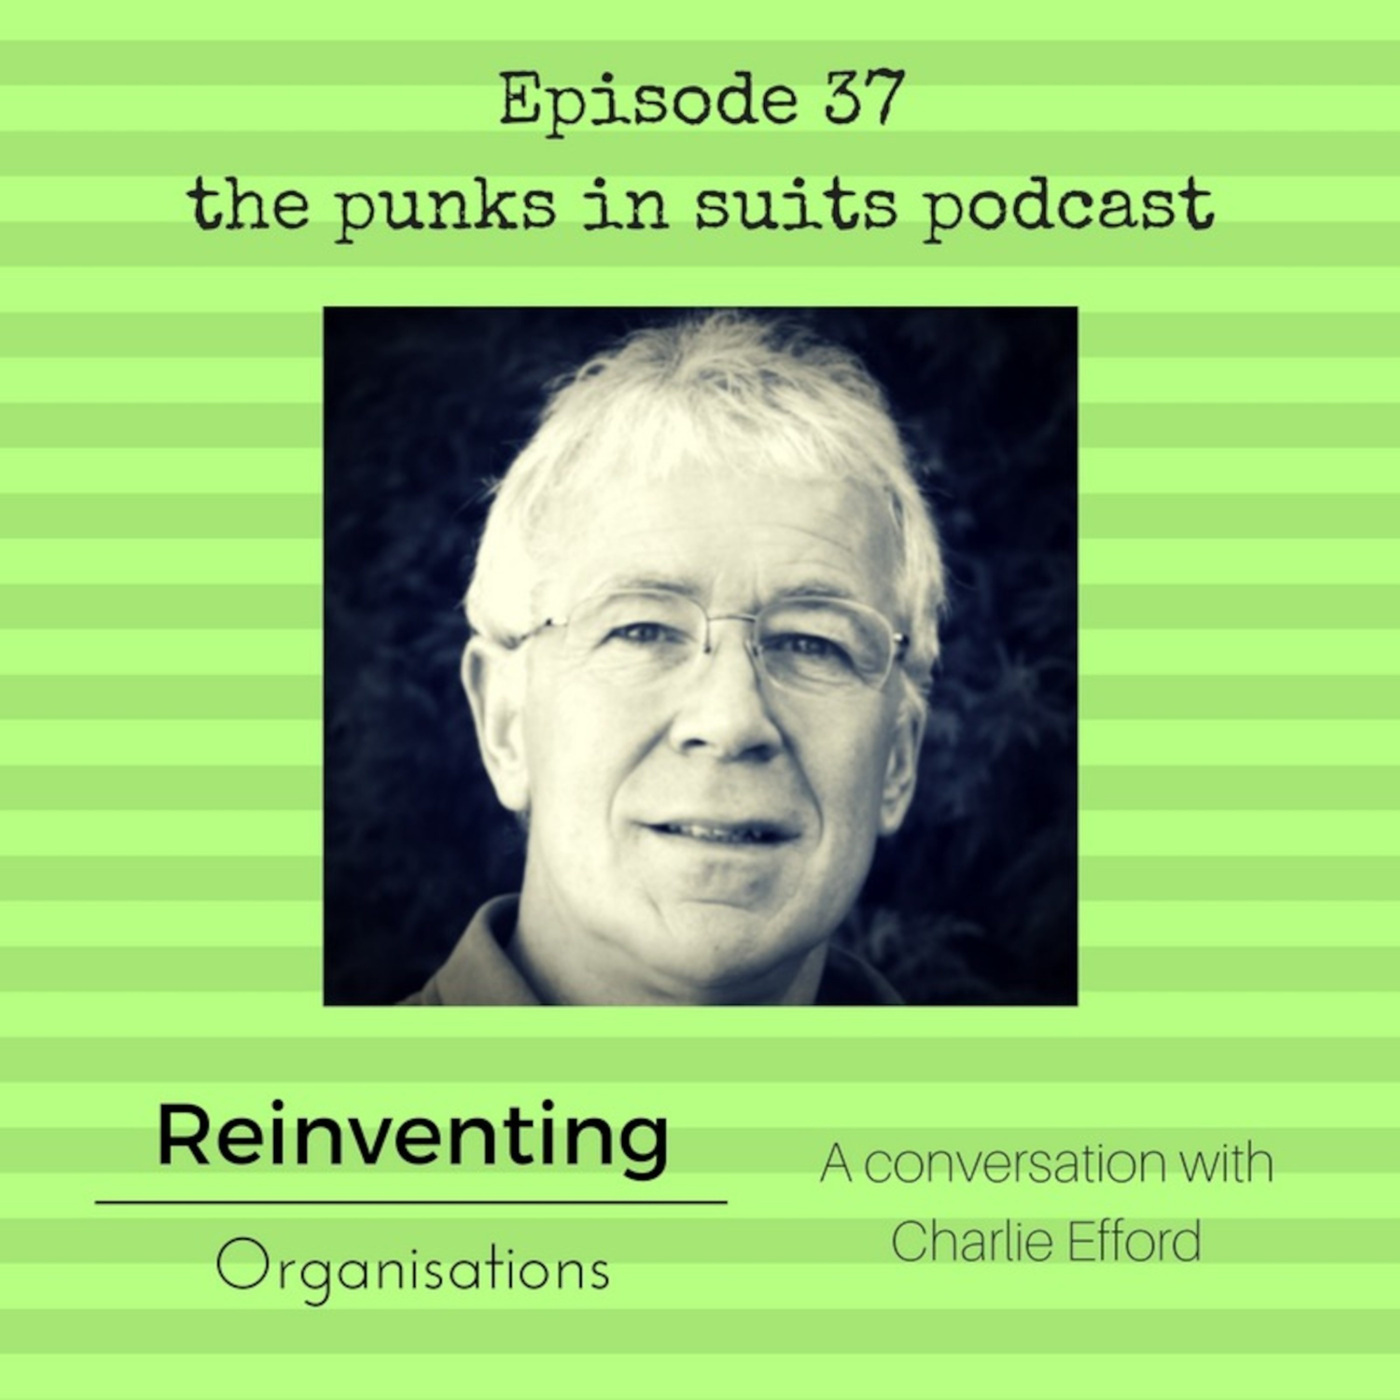 Episode 37: Reinventing Organisations, with Charlie Efford